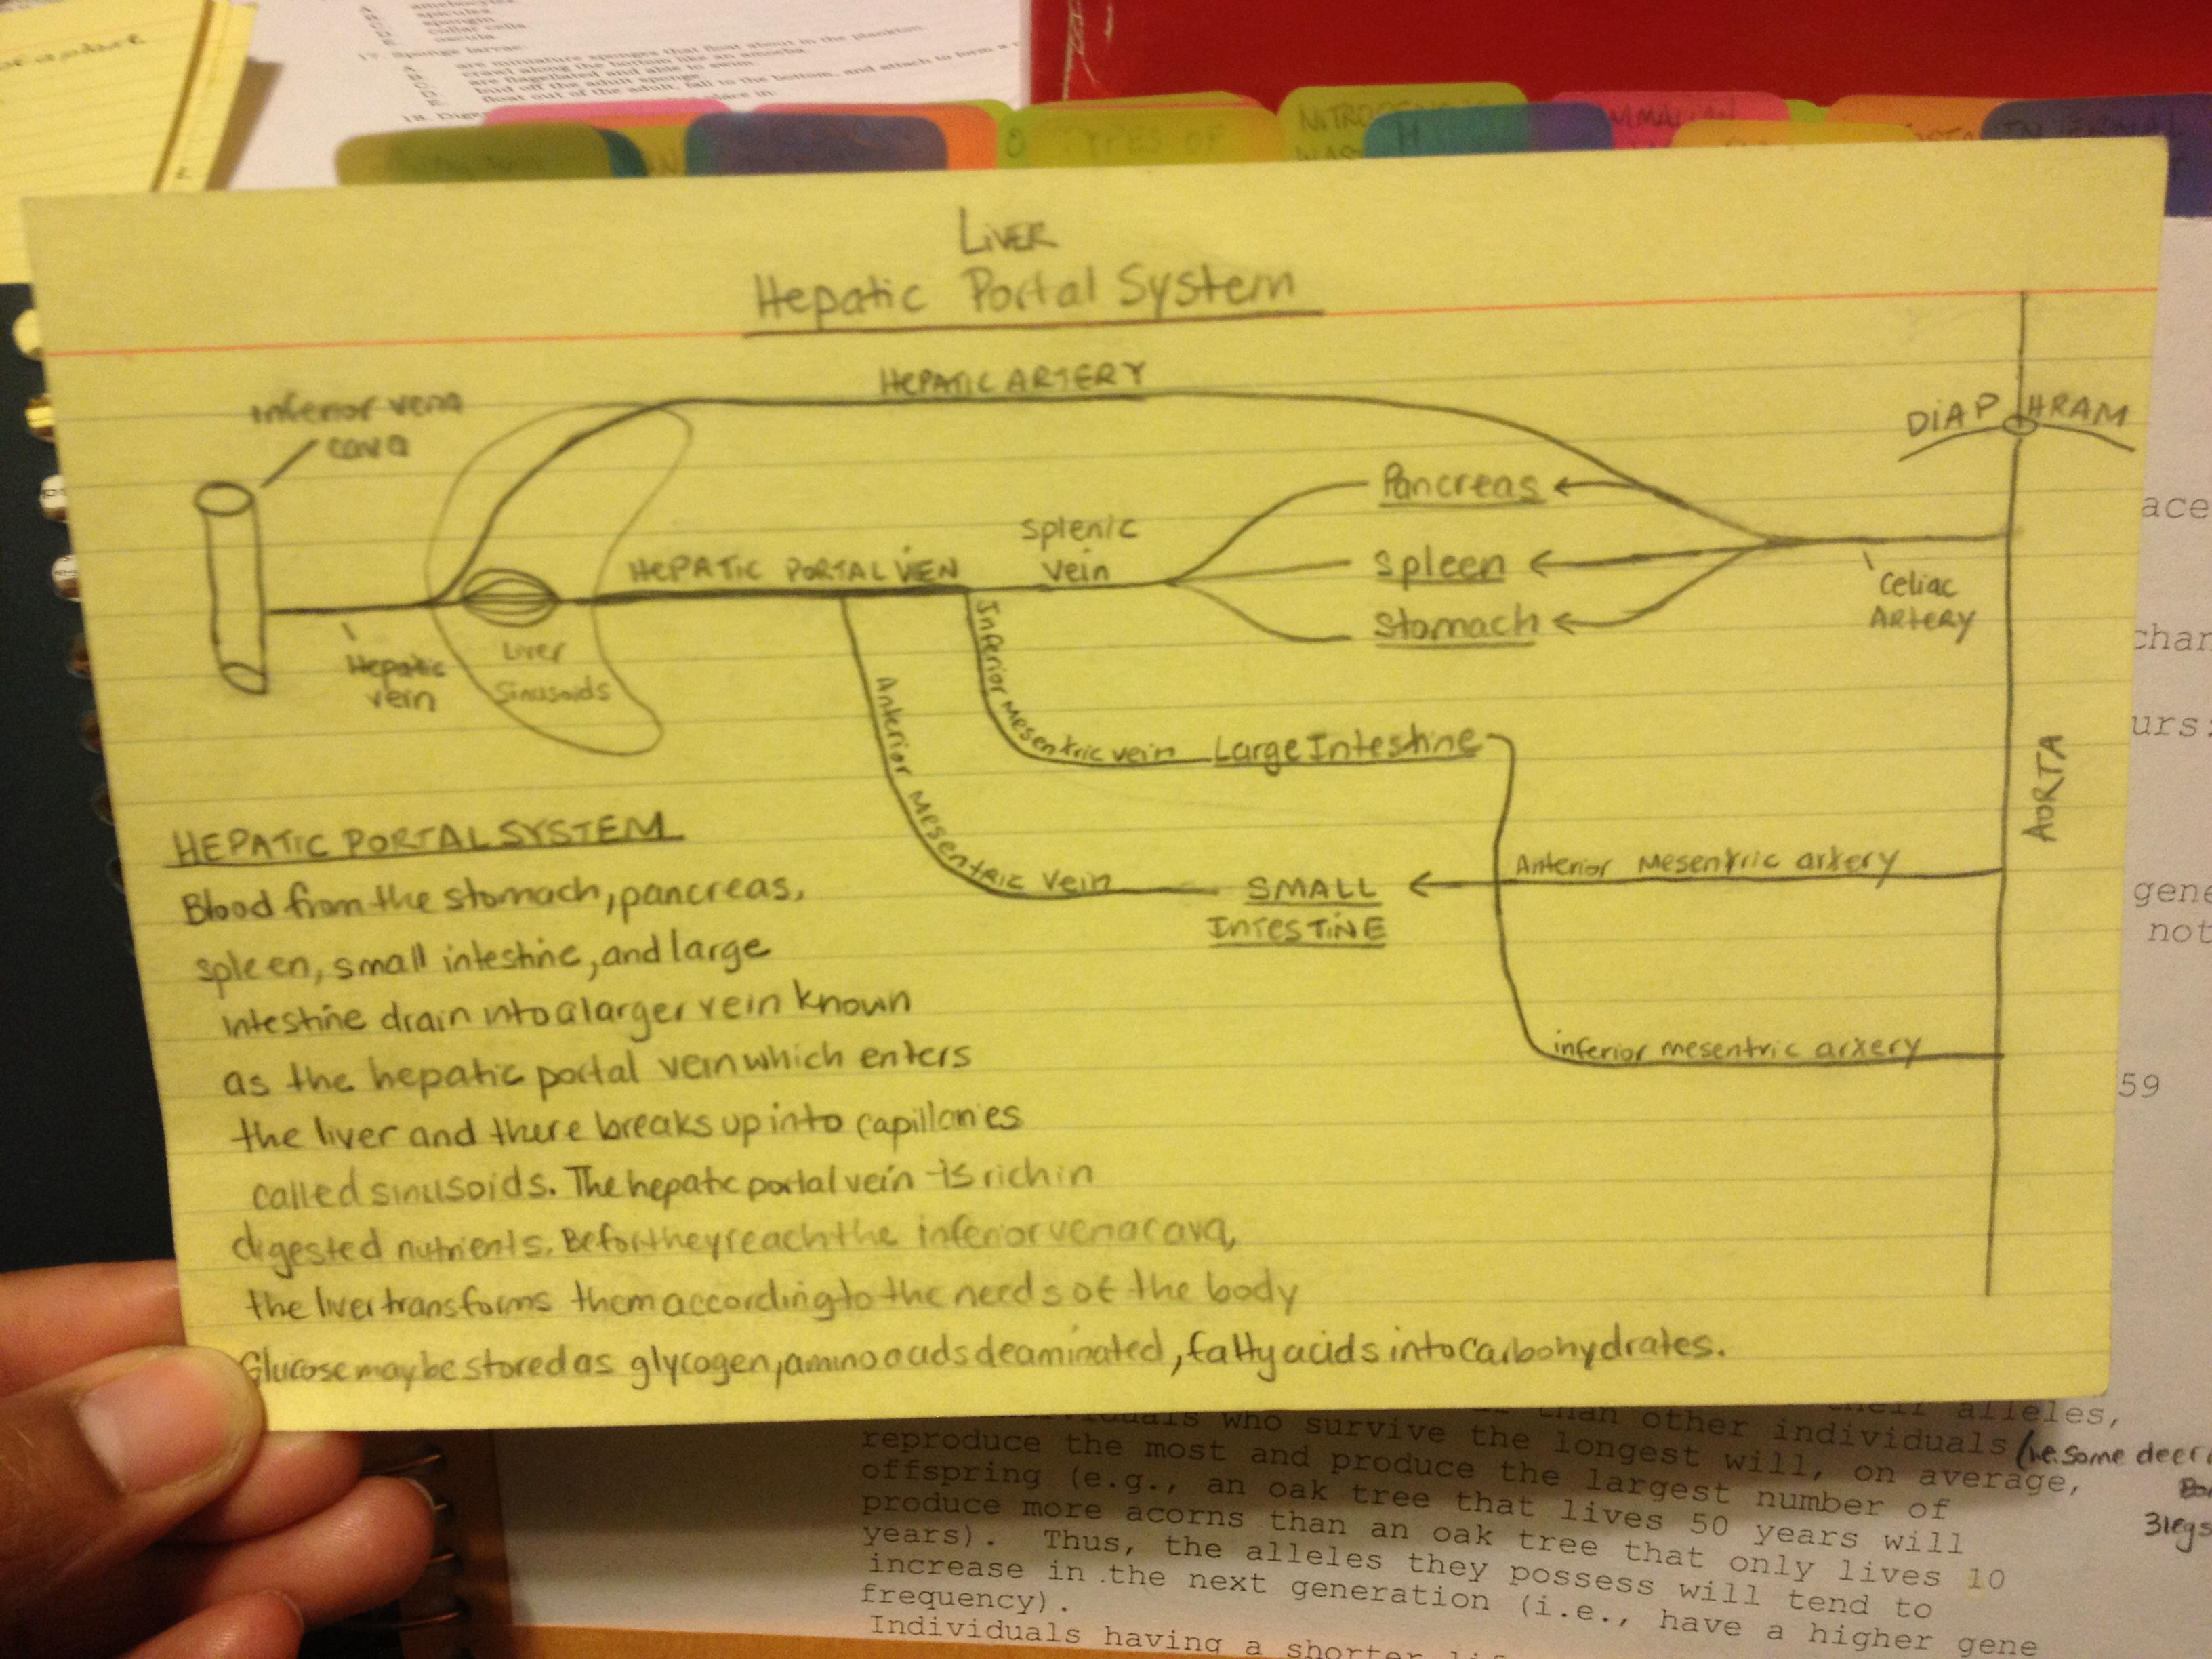 Notes from my undergrad days. Hepatic Portal System overview | Nerd ...